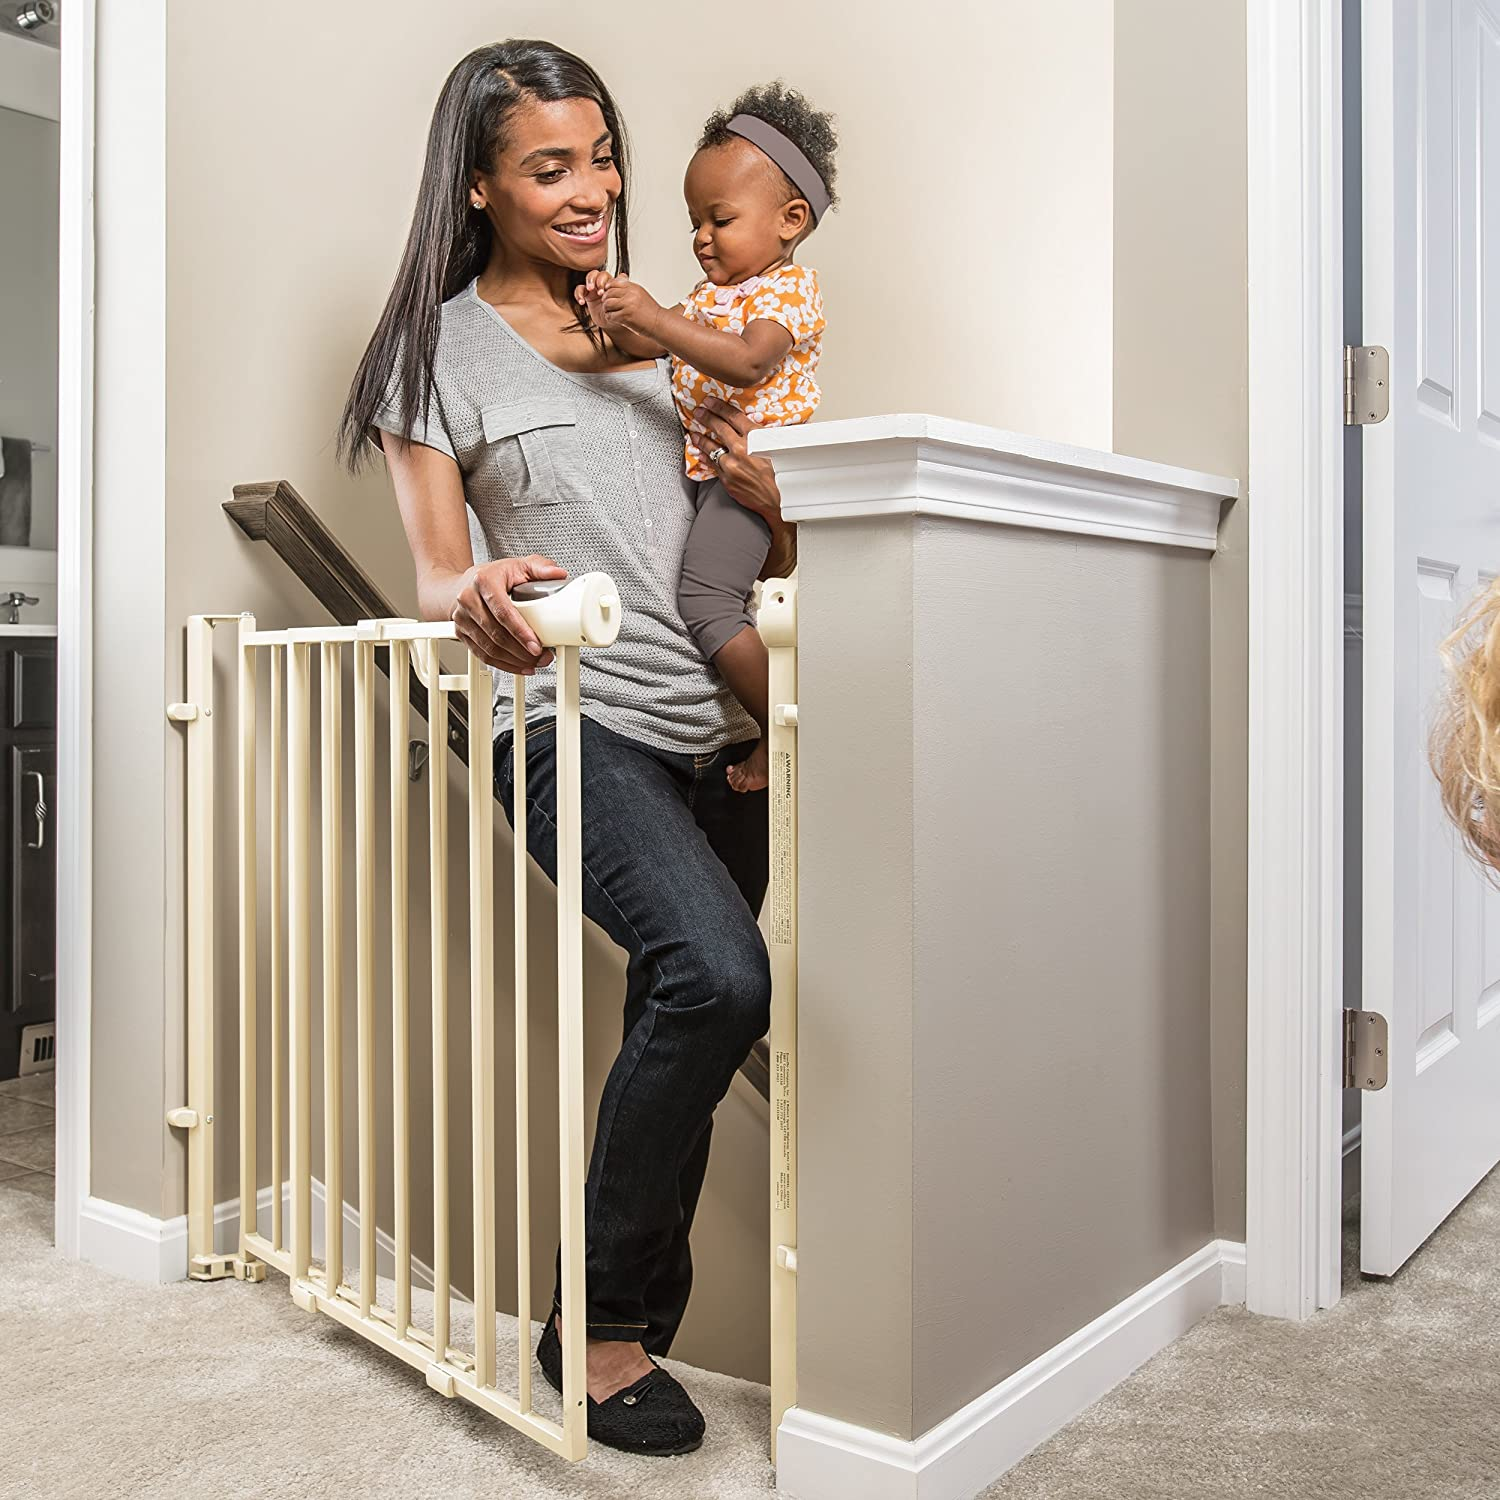 Evenflo Easy Walk Thru Top of Stairs Gate: Best baby gate for the top of stairs